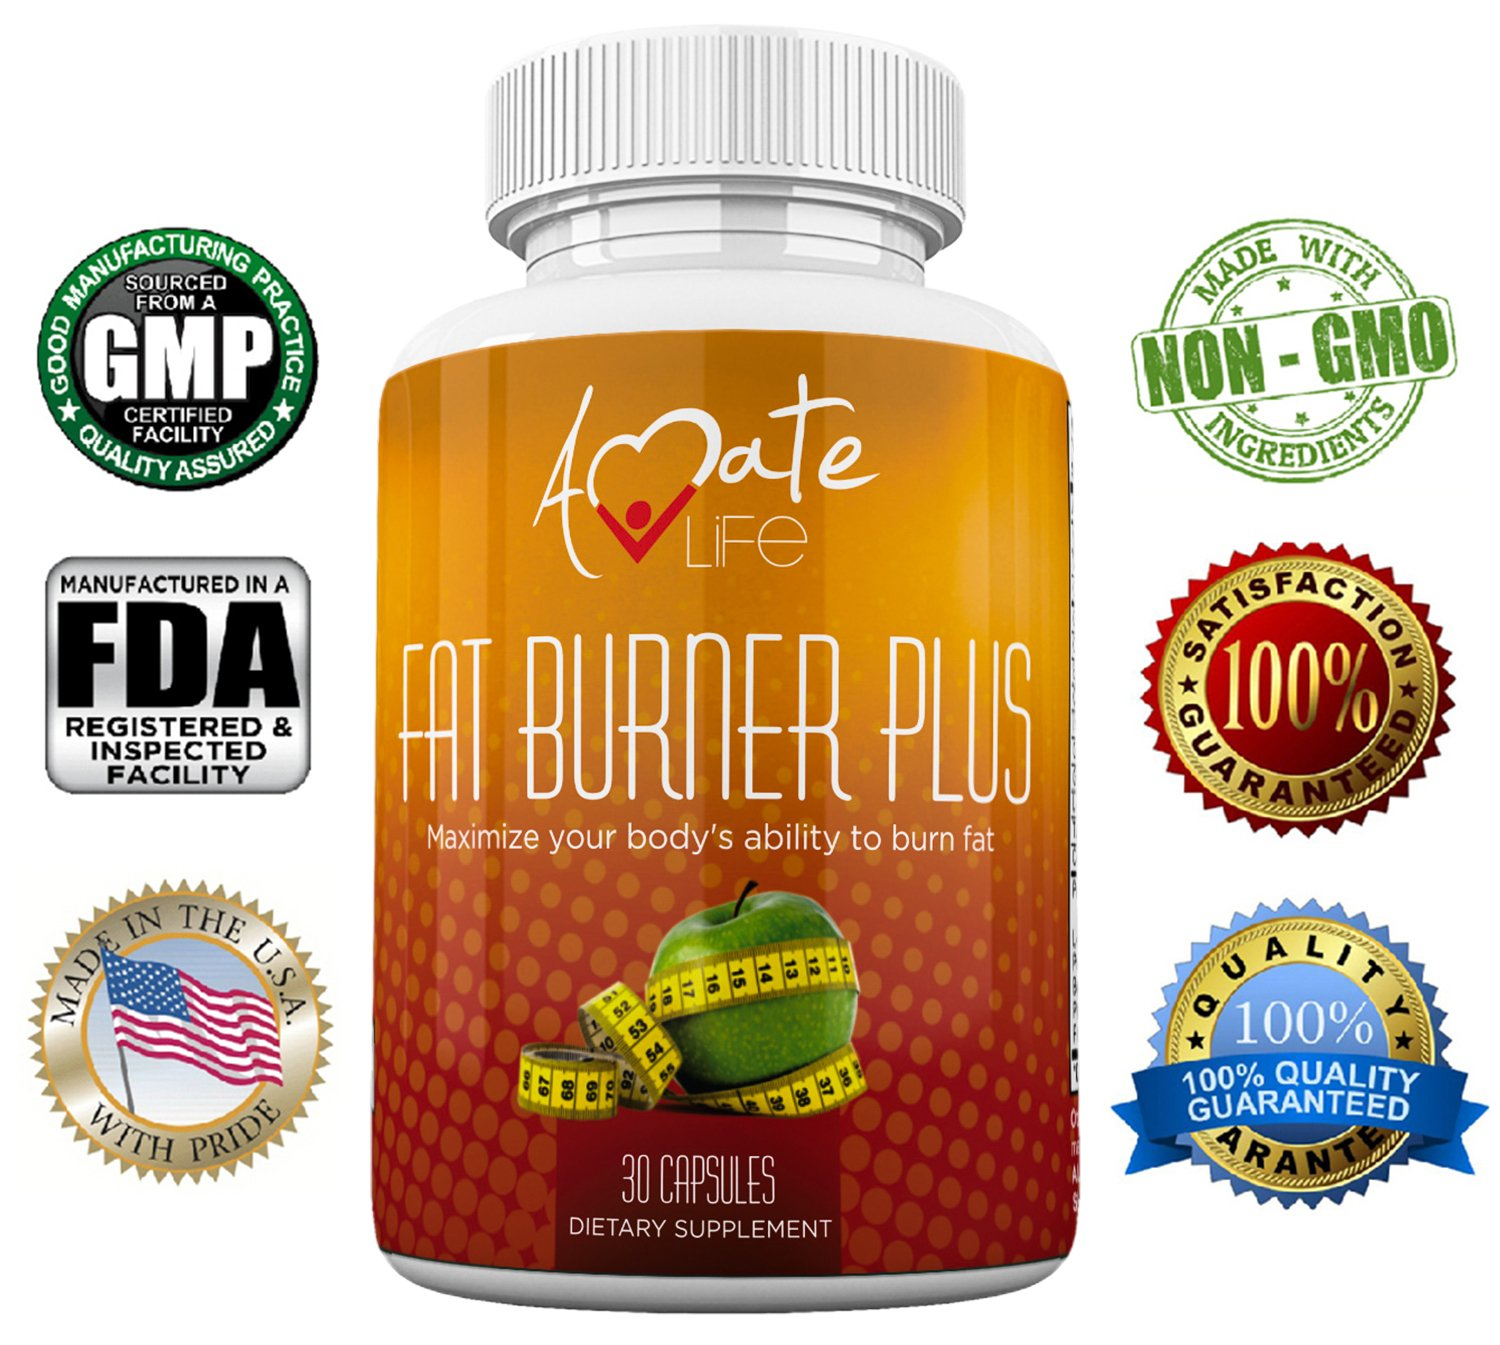 Amate Life Fat Burner Plus Natural Supplement -Strong Combination of Fat Burning Ingredients -Lose Weight & Increase Metabolism-Control Appetite-Stimulant Free-Non GMO Dietary Supplement